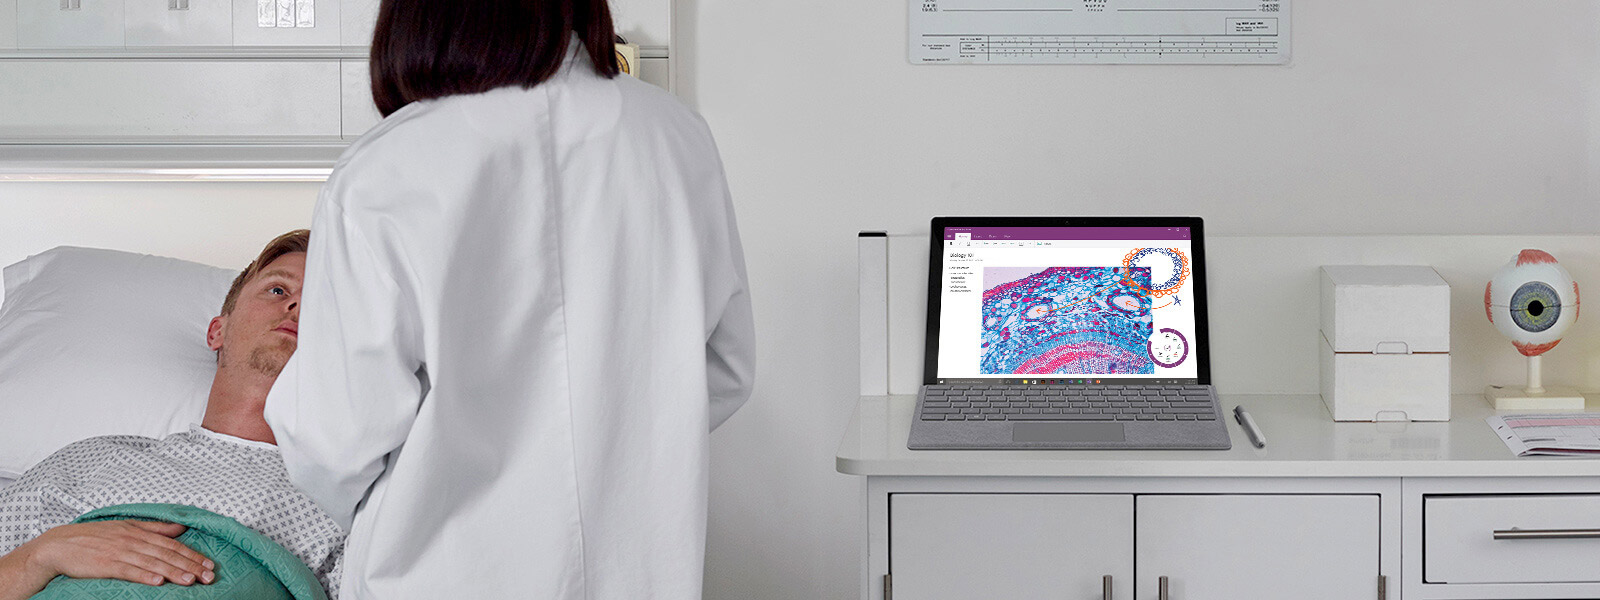 Doctor talks to patient at bedside, and Surface Book sits on table in background.